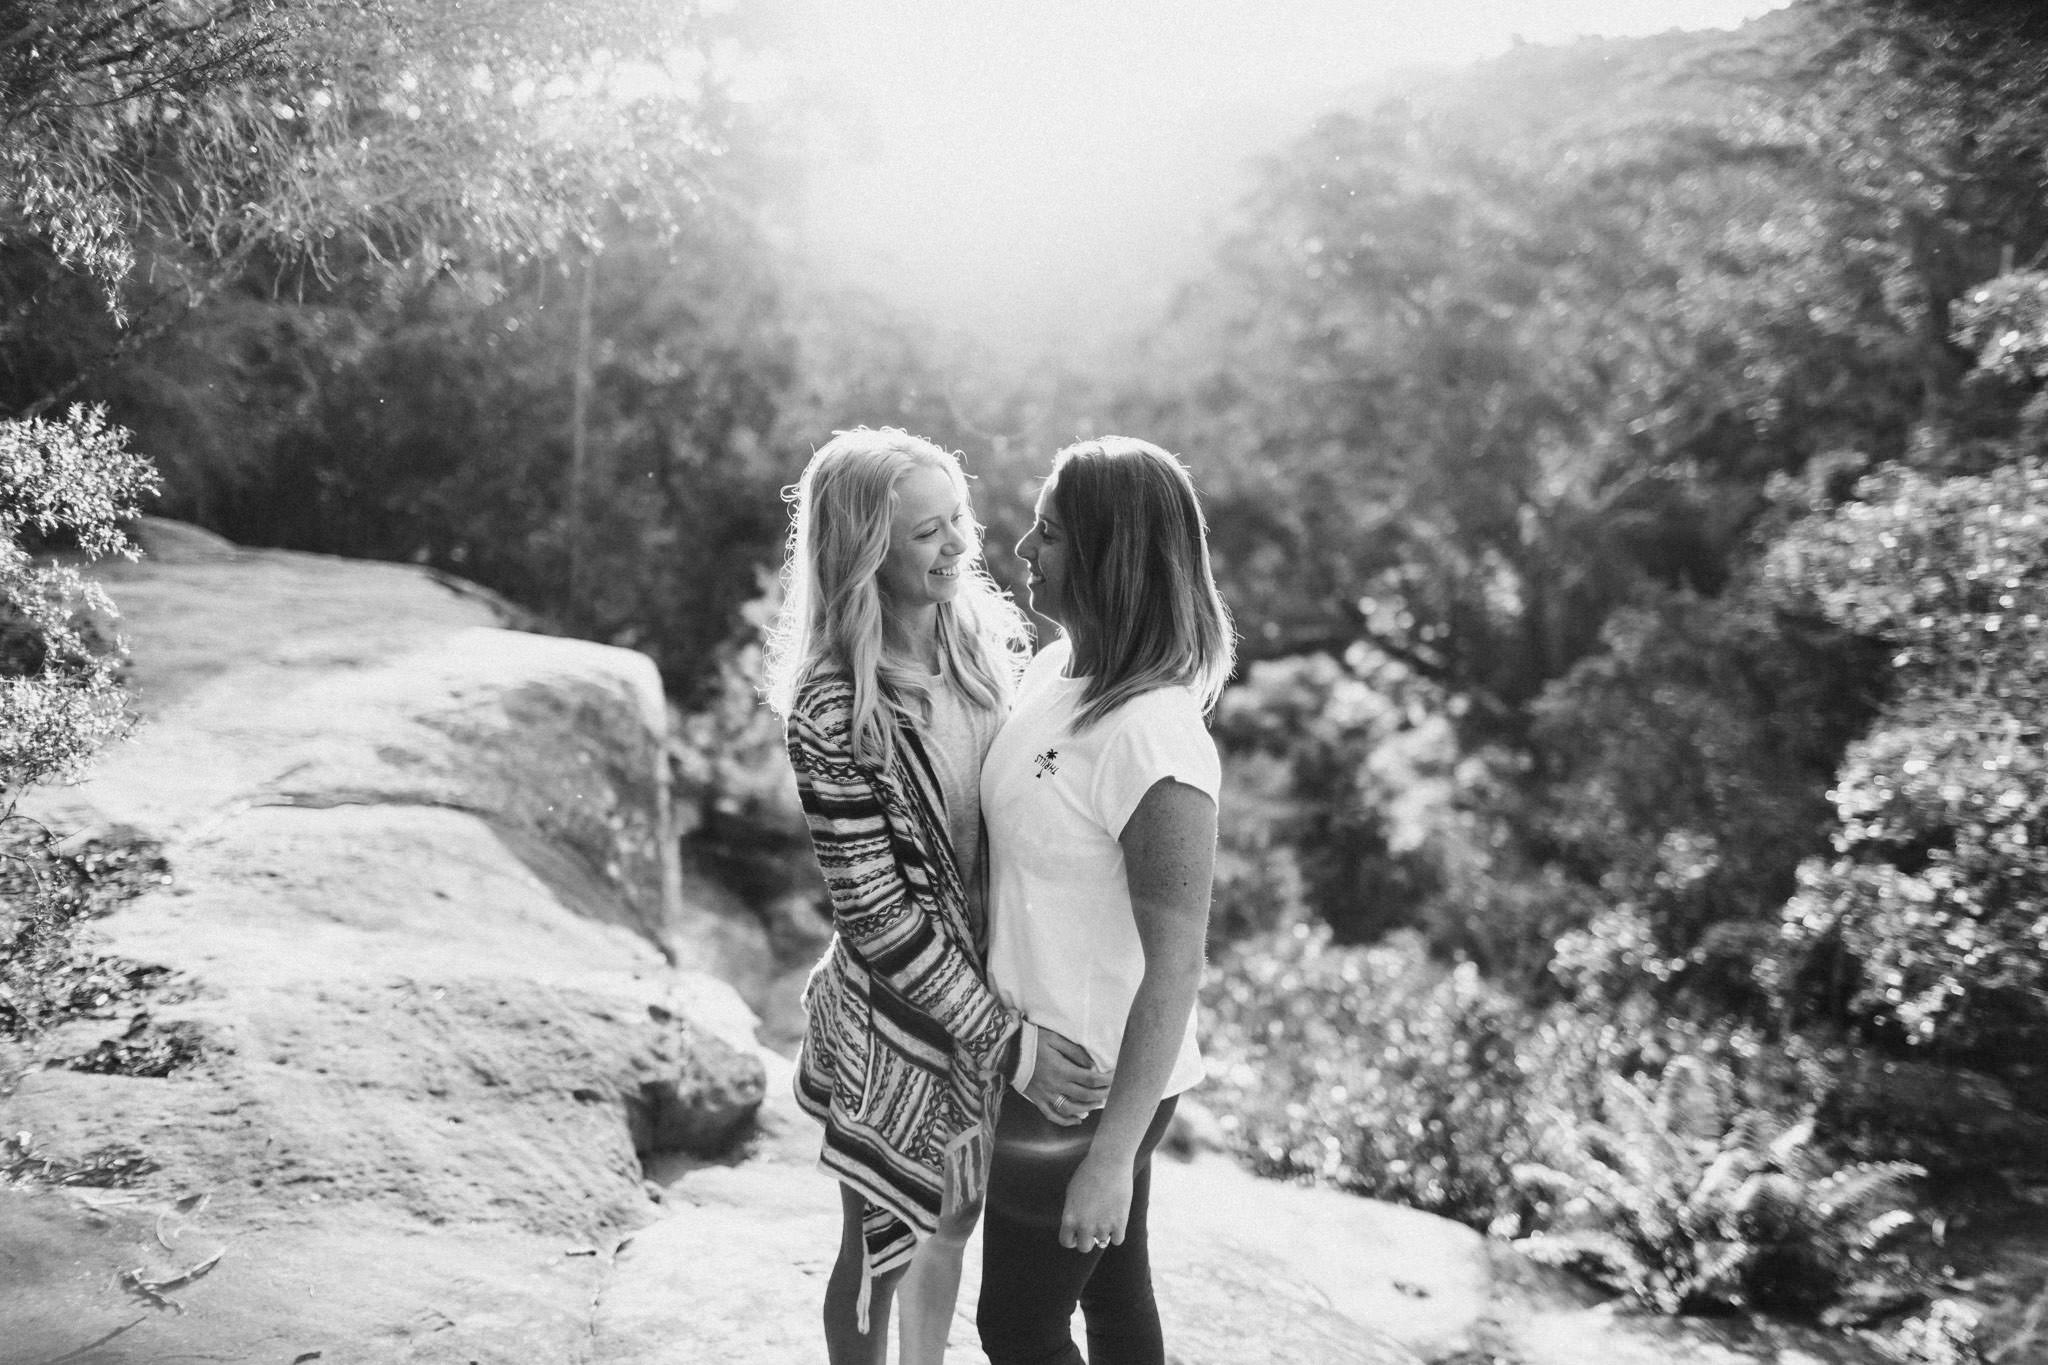 Bri_Gem_Proposal_LaurenAnnePhotography-1066.jpg